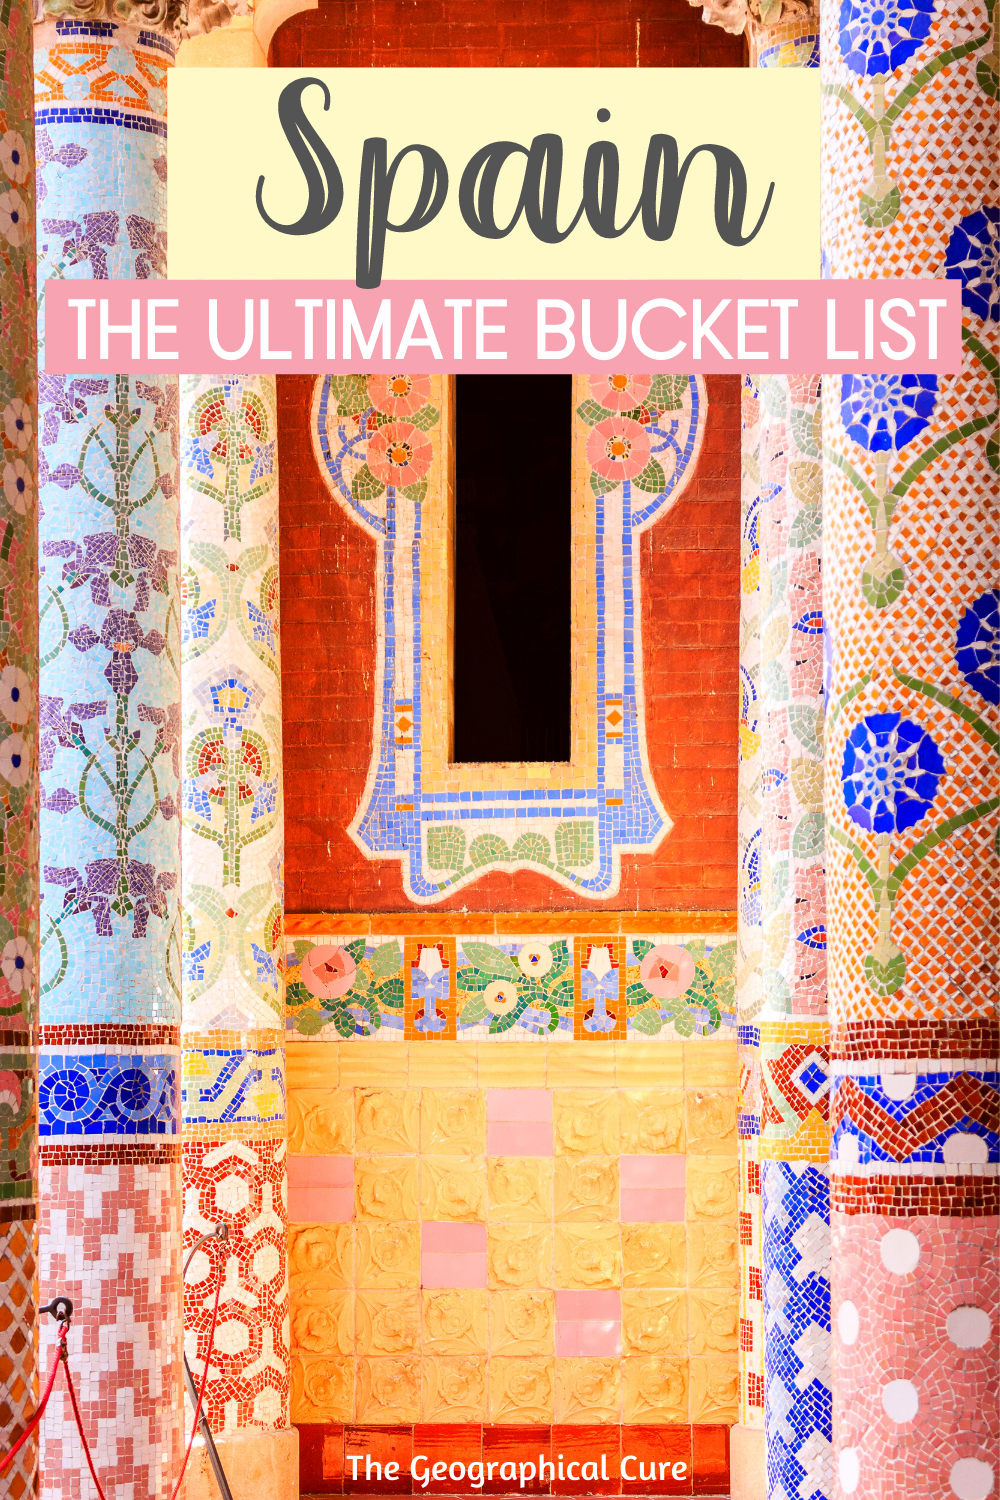 The Ultimate Bucket List for Spain